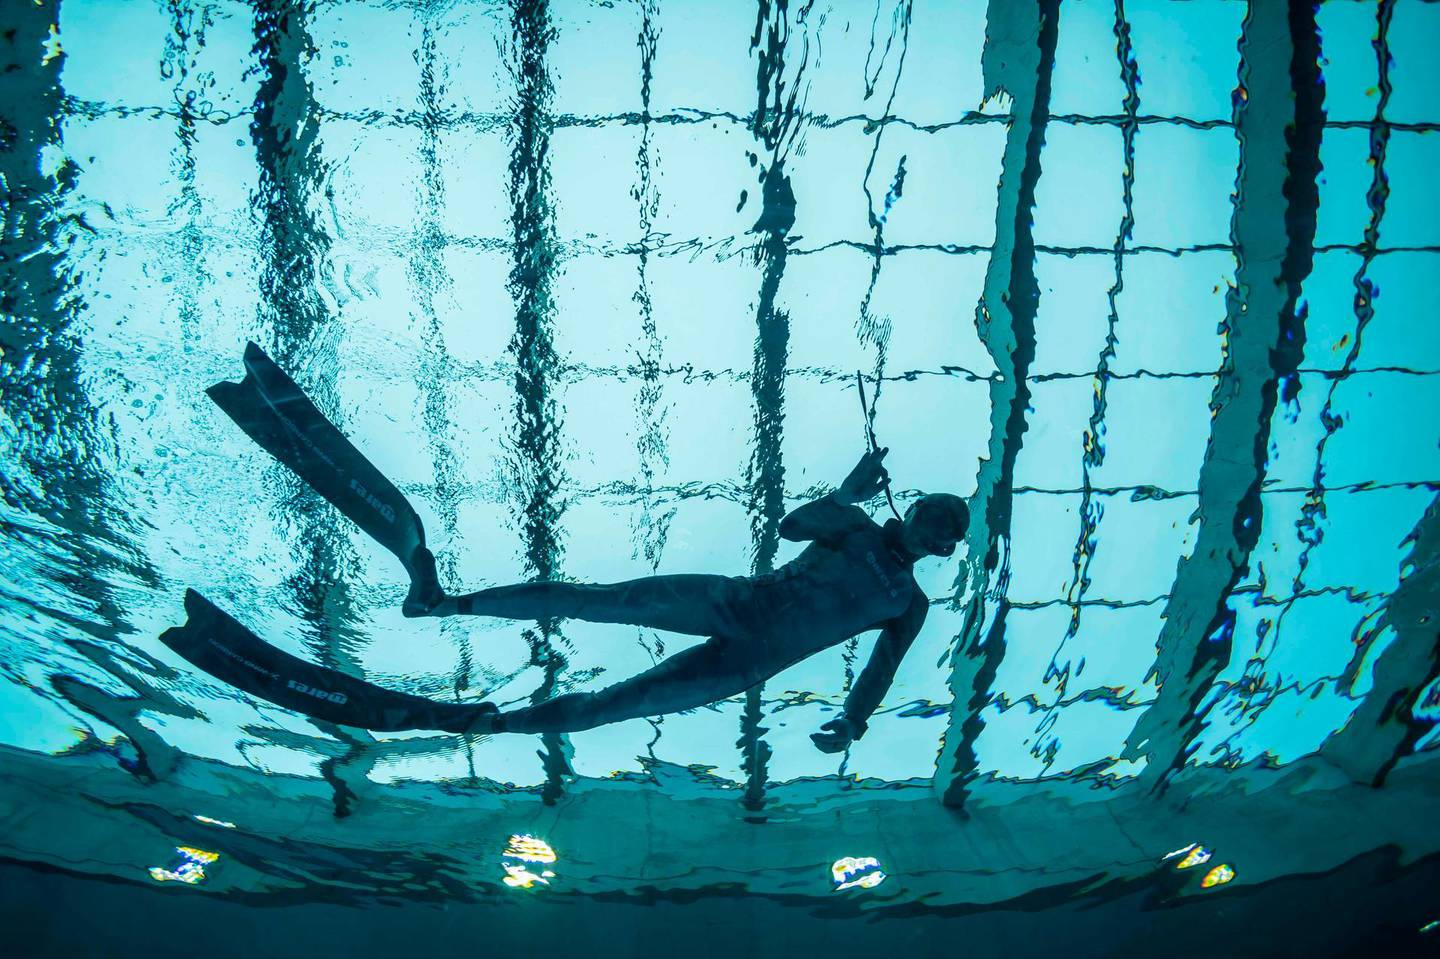 A diver is seen in the deepest pool in the world with 45.5-metre (150-foot) located in Mszczonow about 50 km from Warsaw, November 21, 2020.  The complex, named Deepspot, even includes a small wreck for scuba and free divers to explore. It has 8,000 cubic metres of water -- more than 20 times the amount in an ordinary 25-metre pool.  / AFP / Wojtek RADWANSKI / TO GO WITH AFP STORY